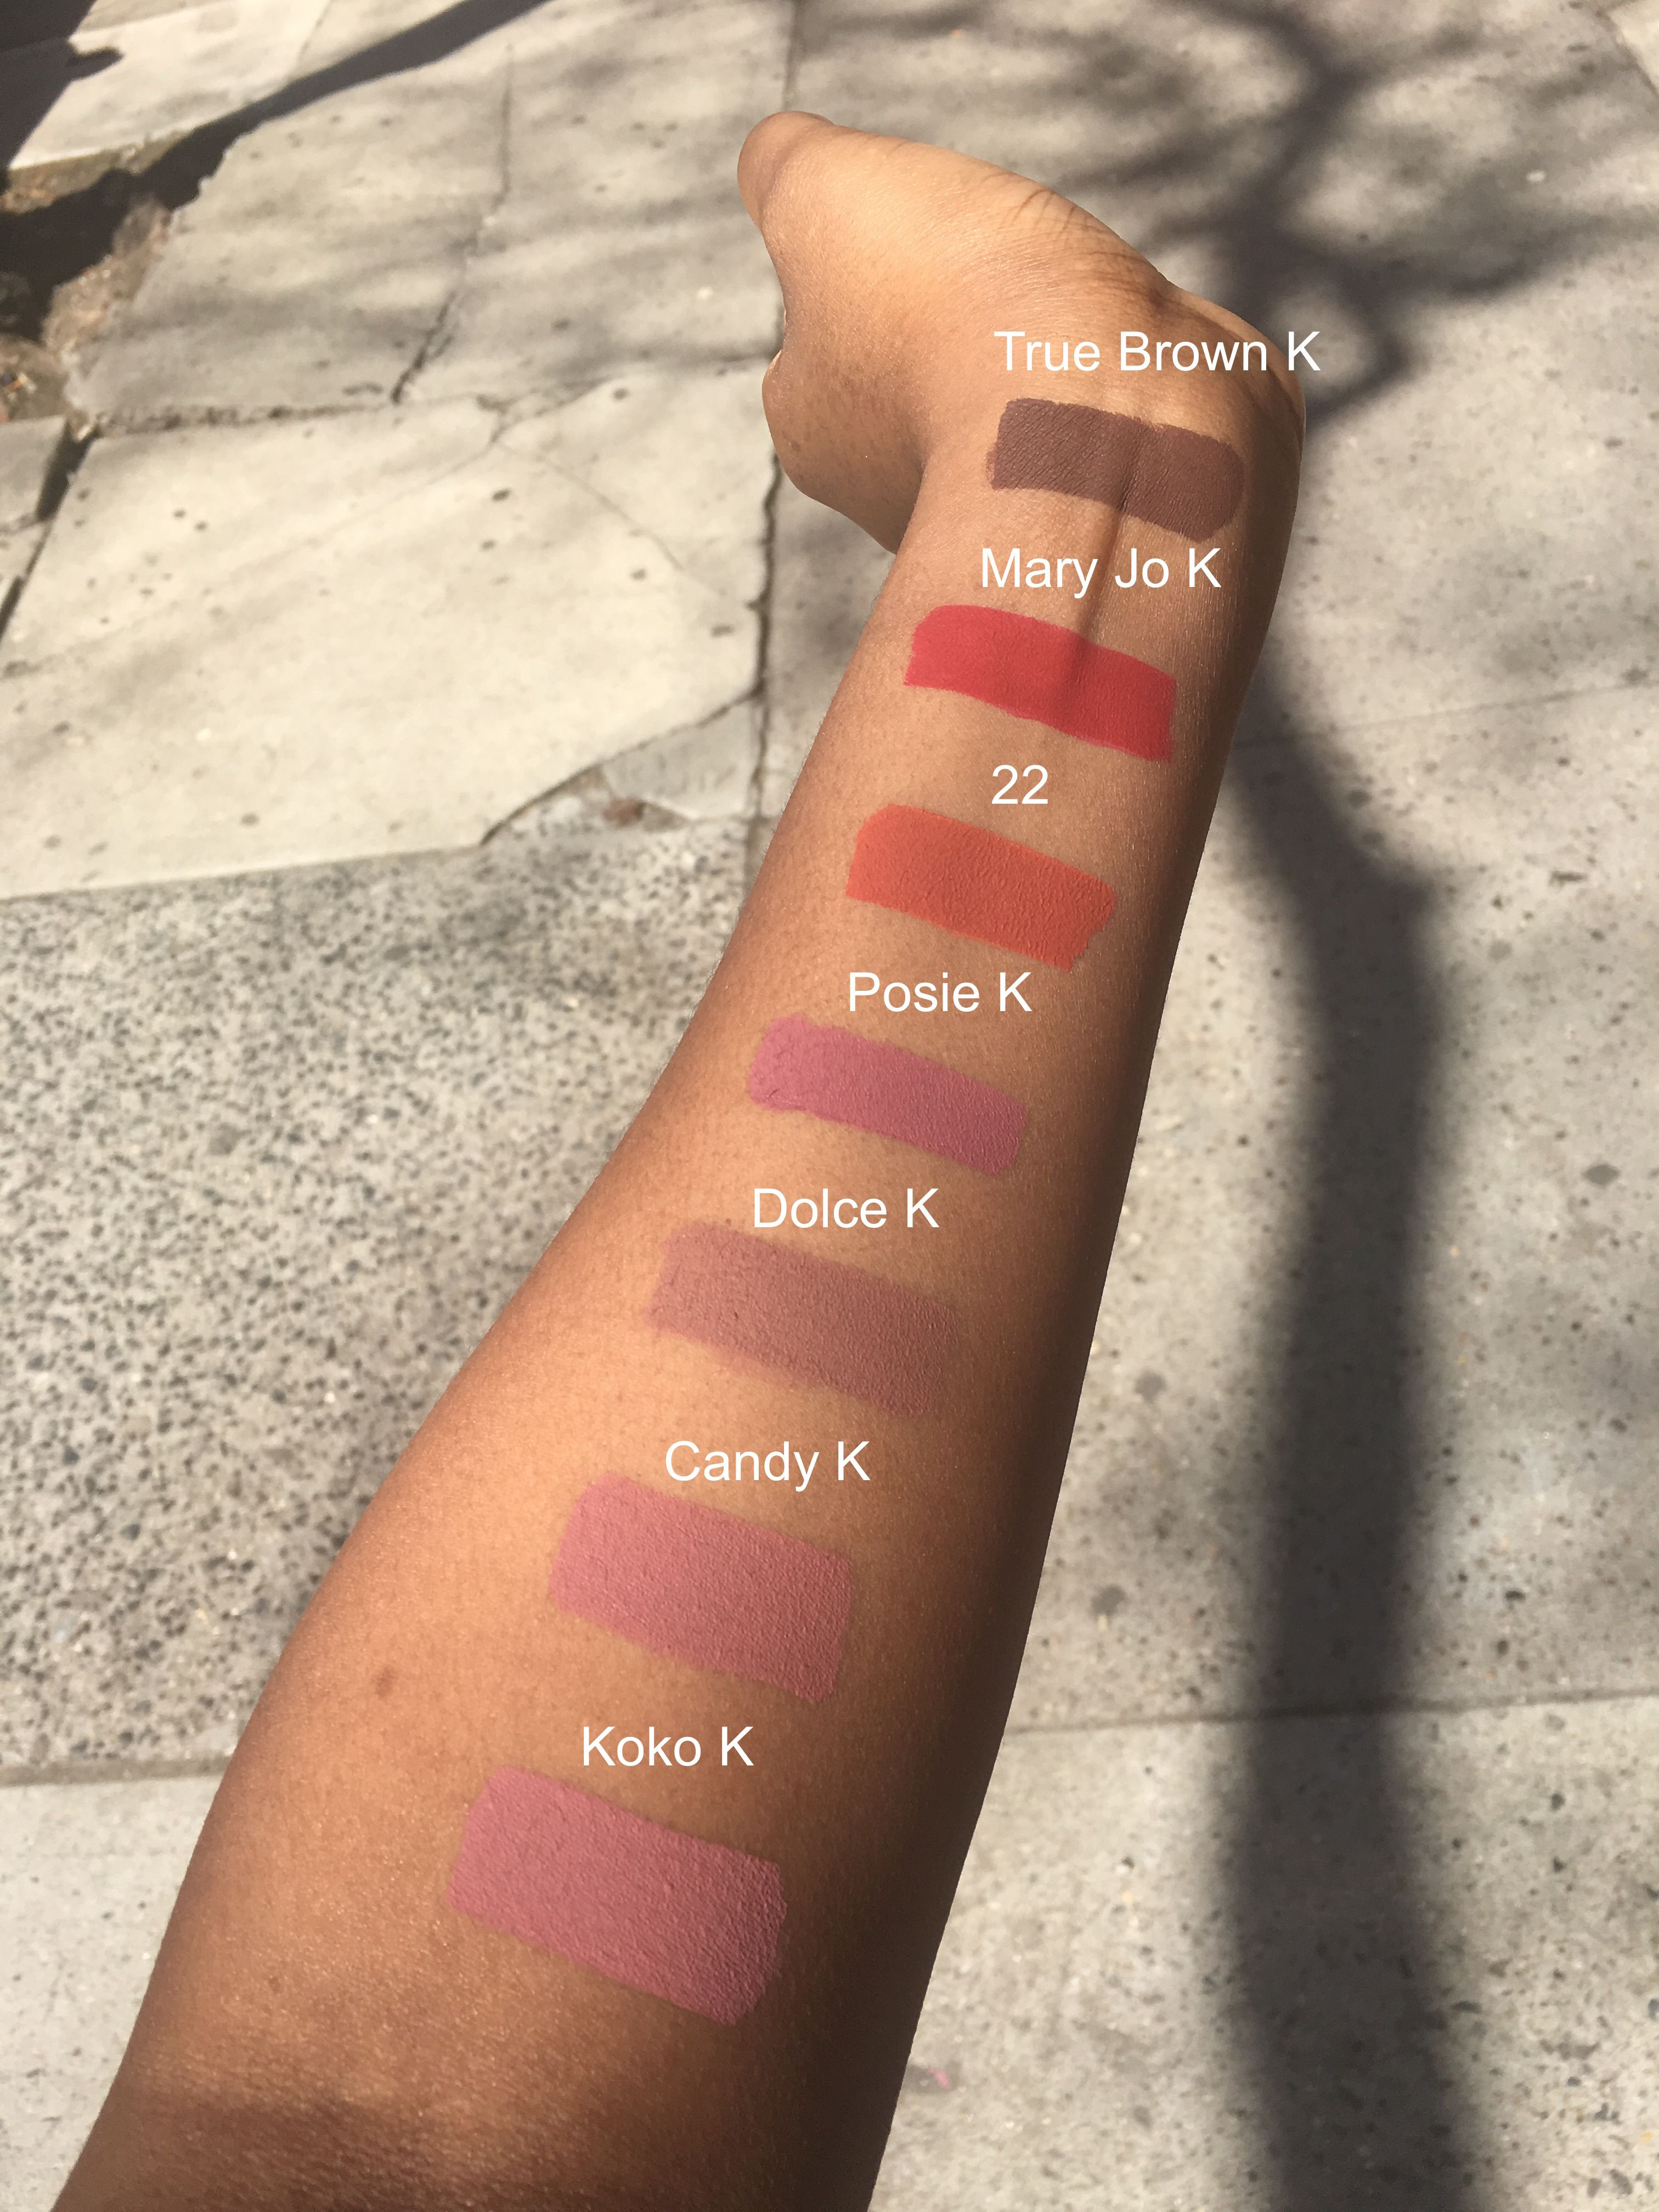 Kylie LipKit arm swatches and review on NC45 complexion